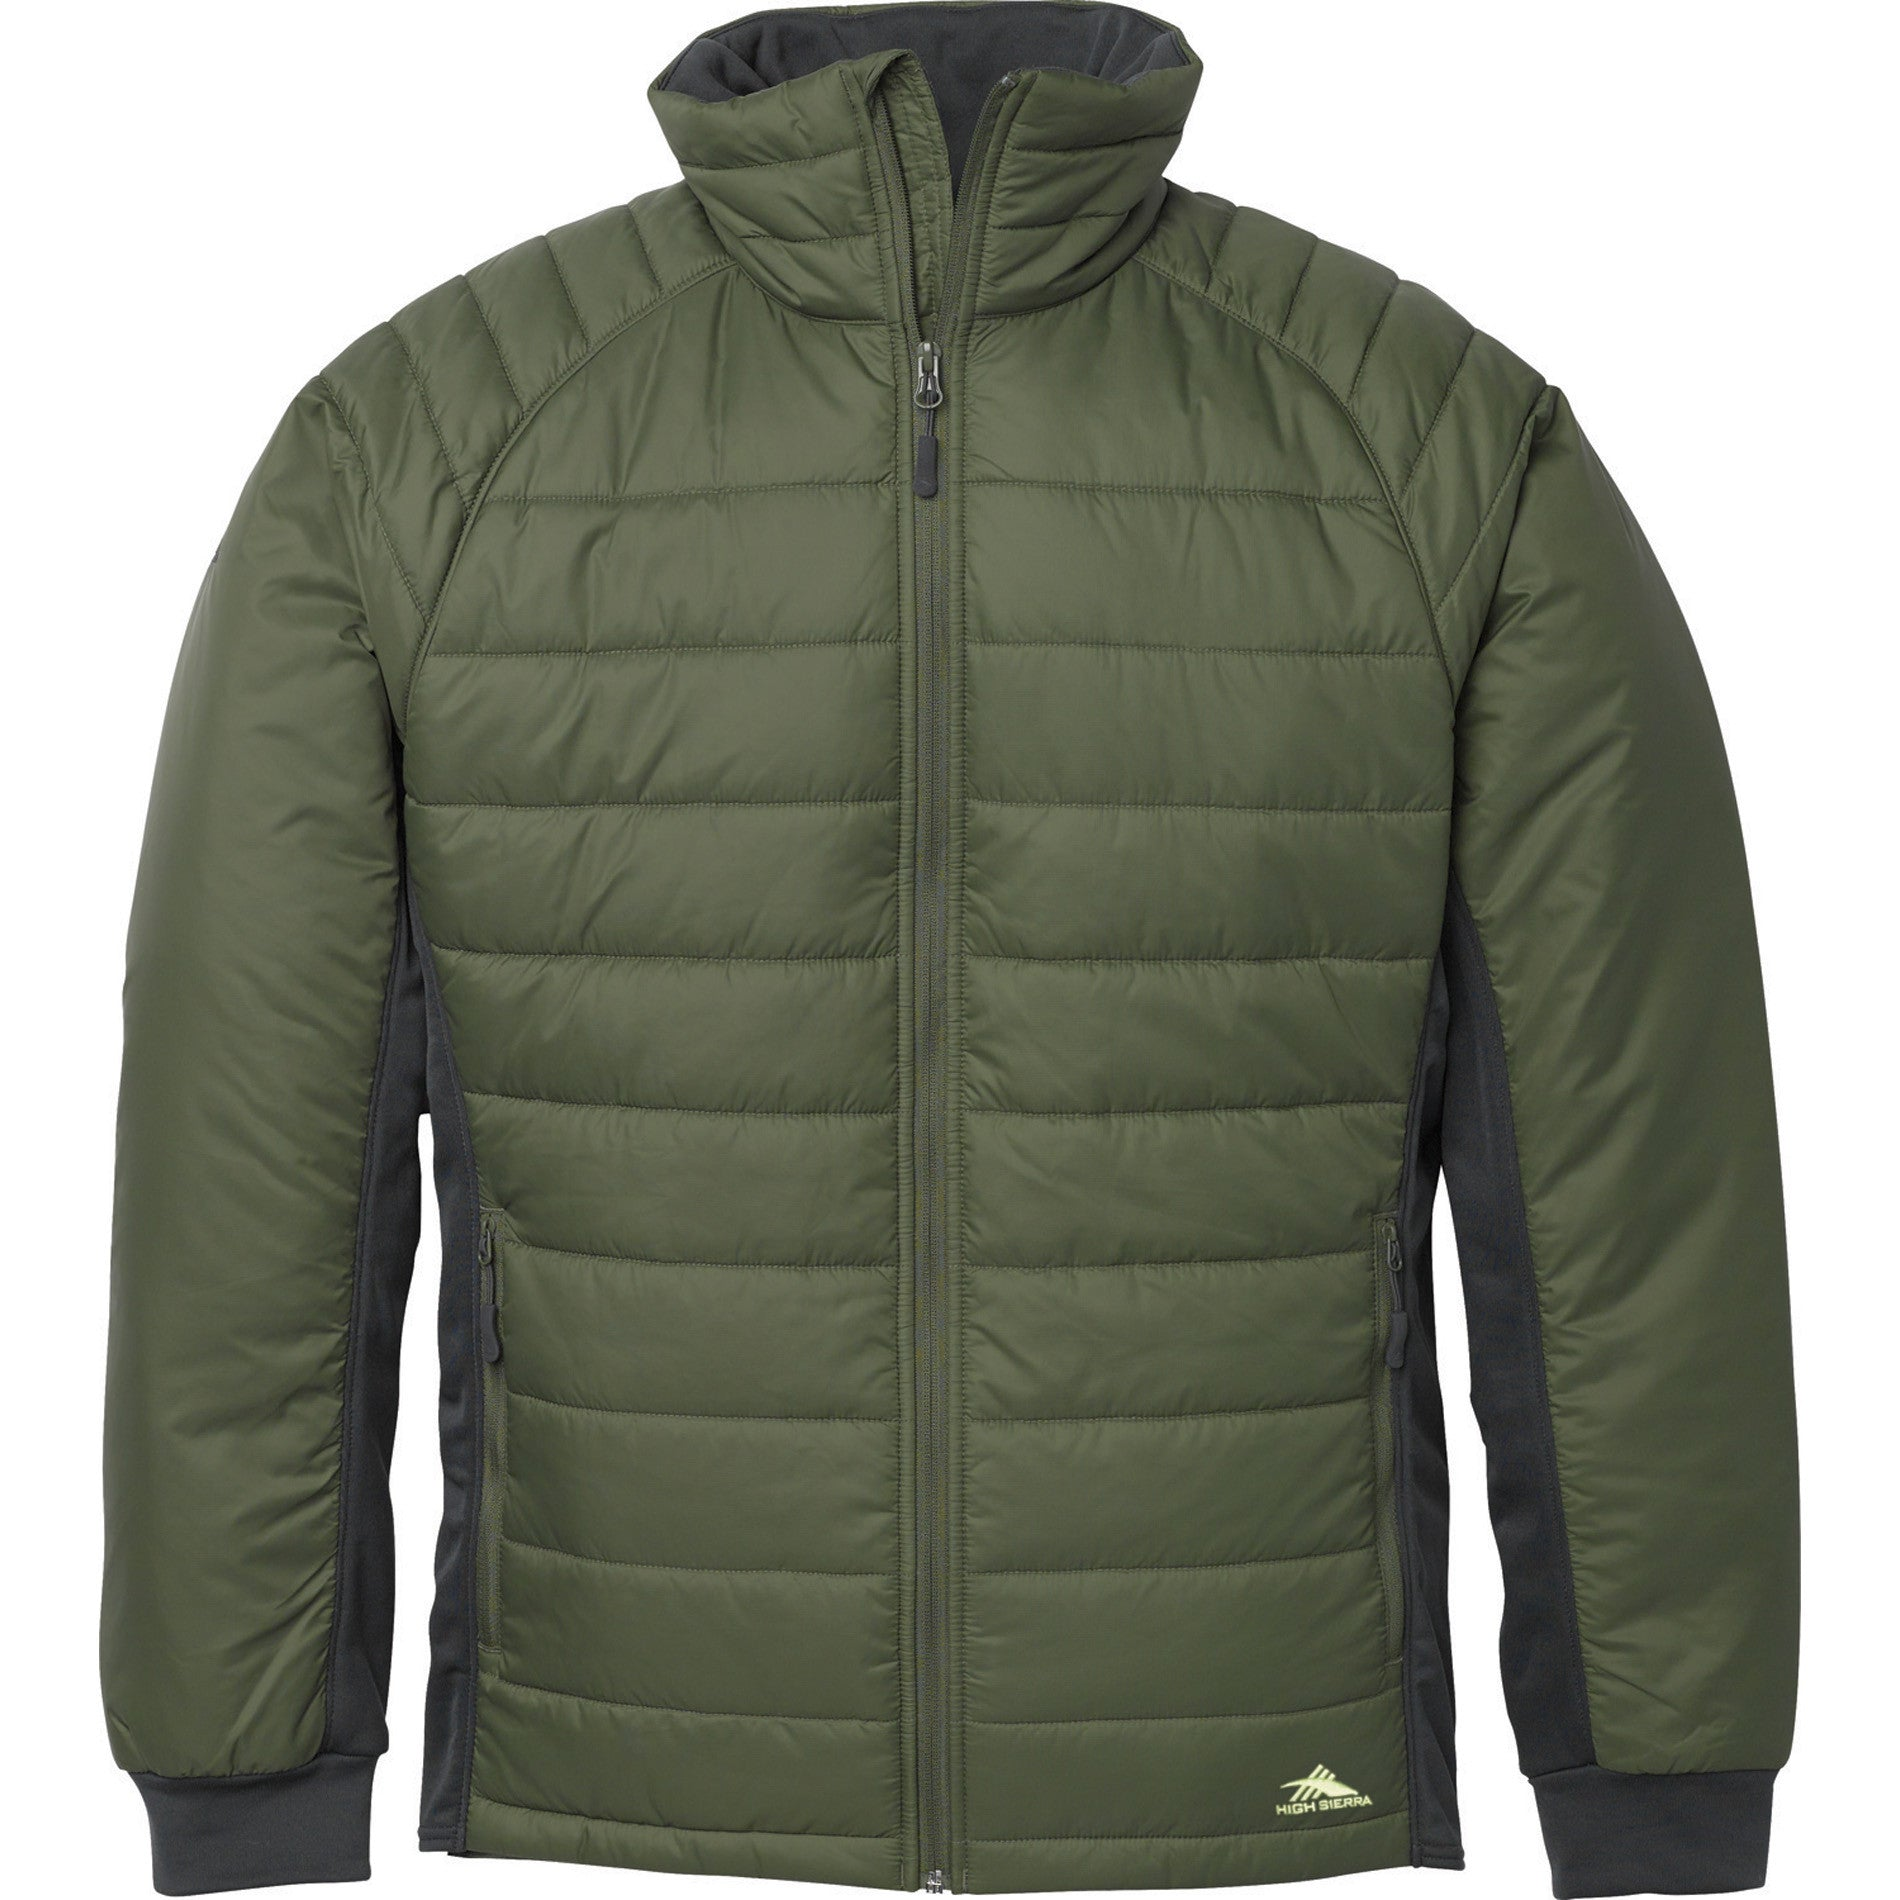 High Sierra Men's Molo Hybrid Insulated Jacket